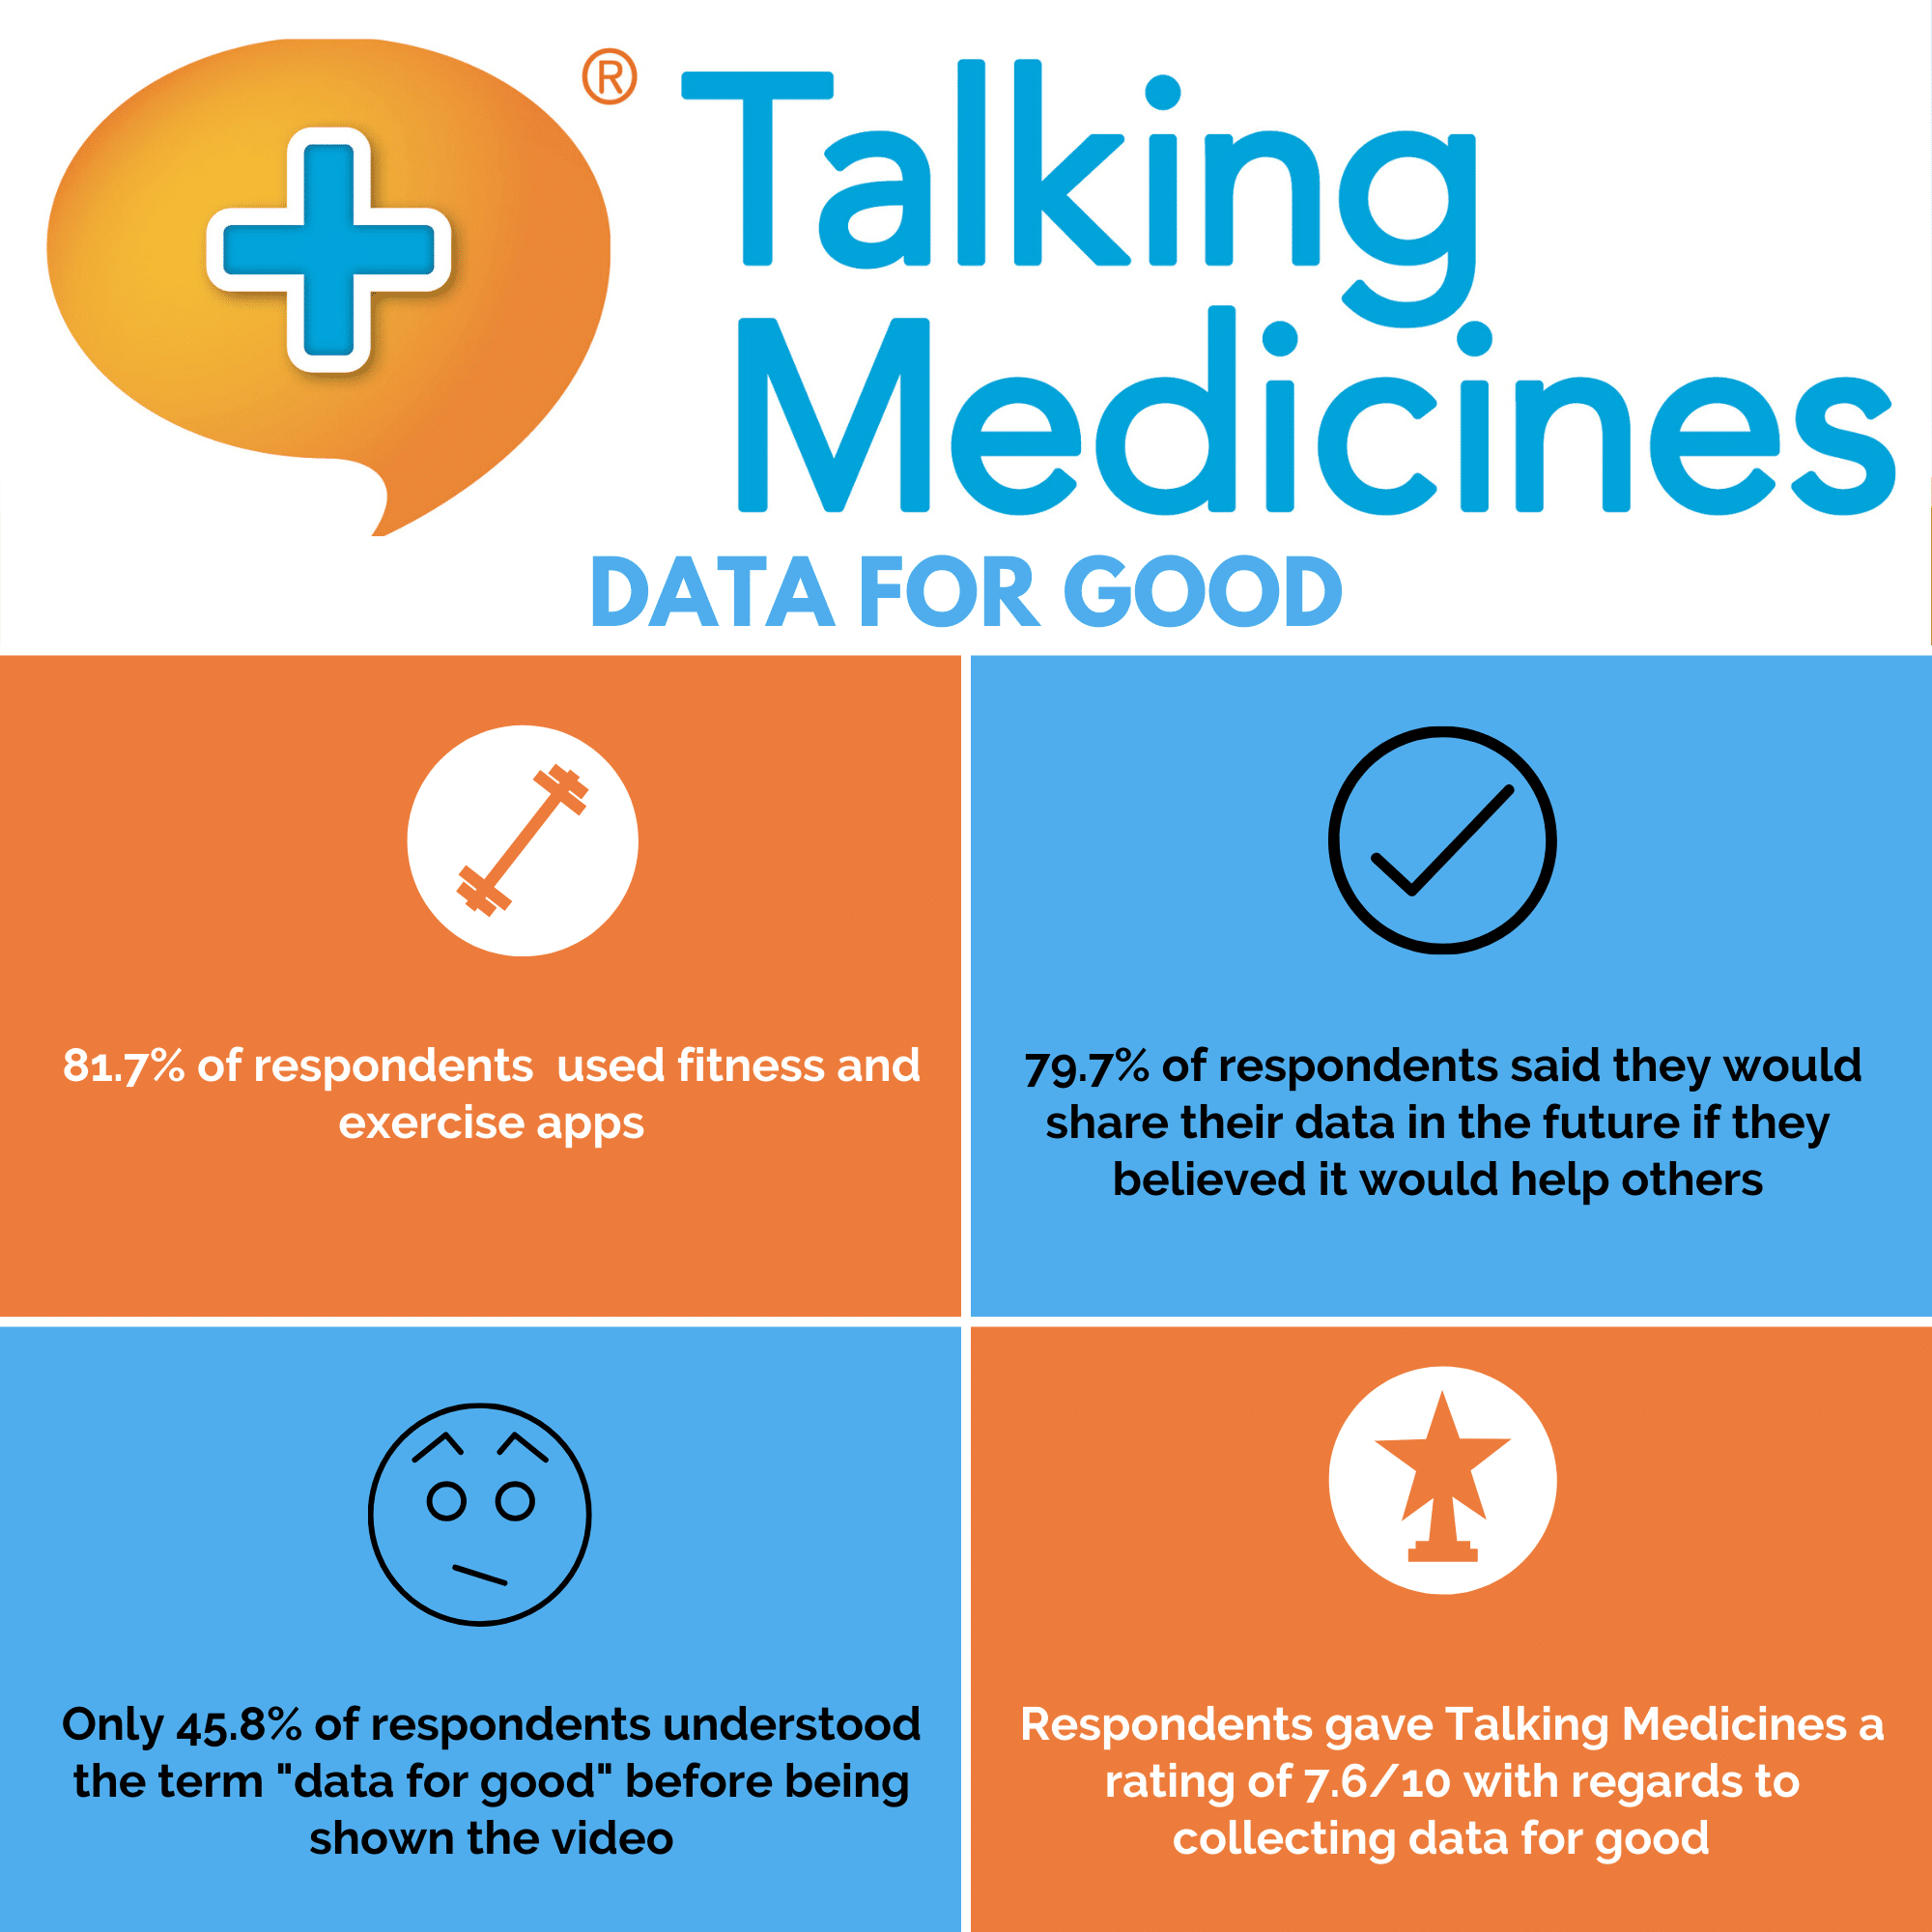 Data for Good